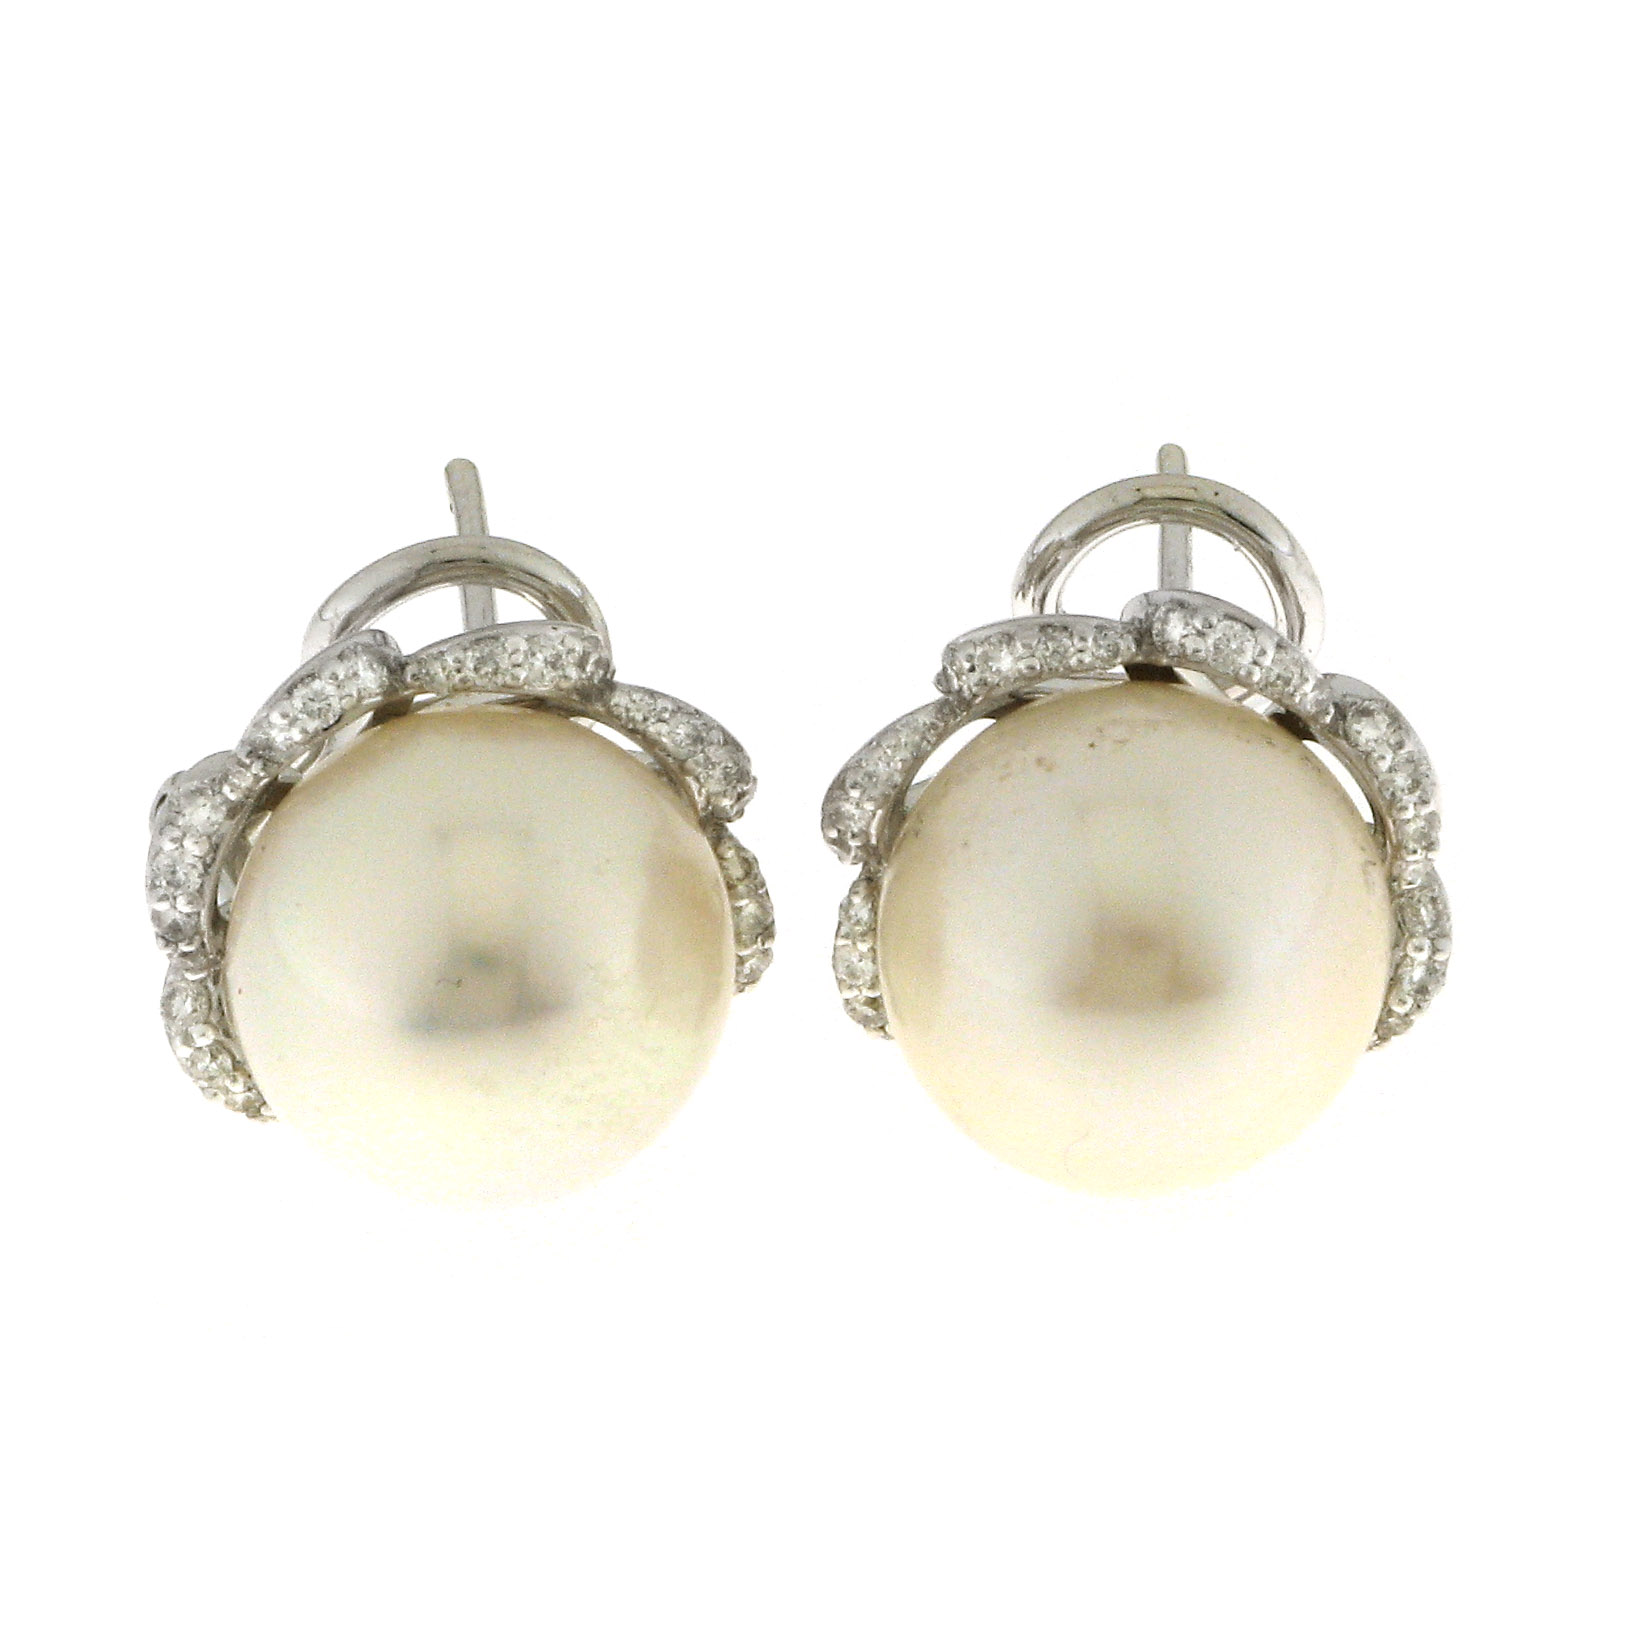 Chimento earrings in white gold with pearls 1O07026CC5009